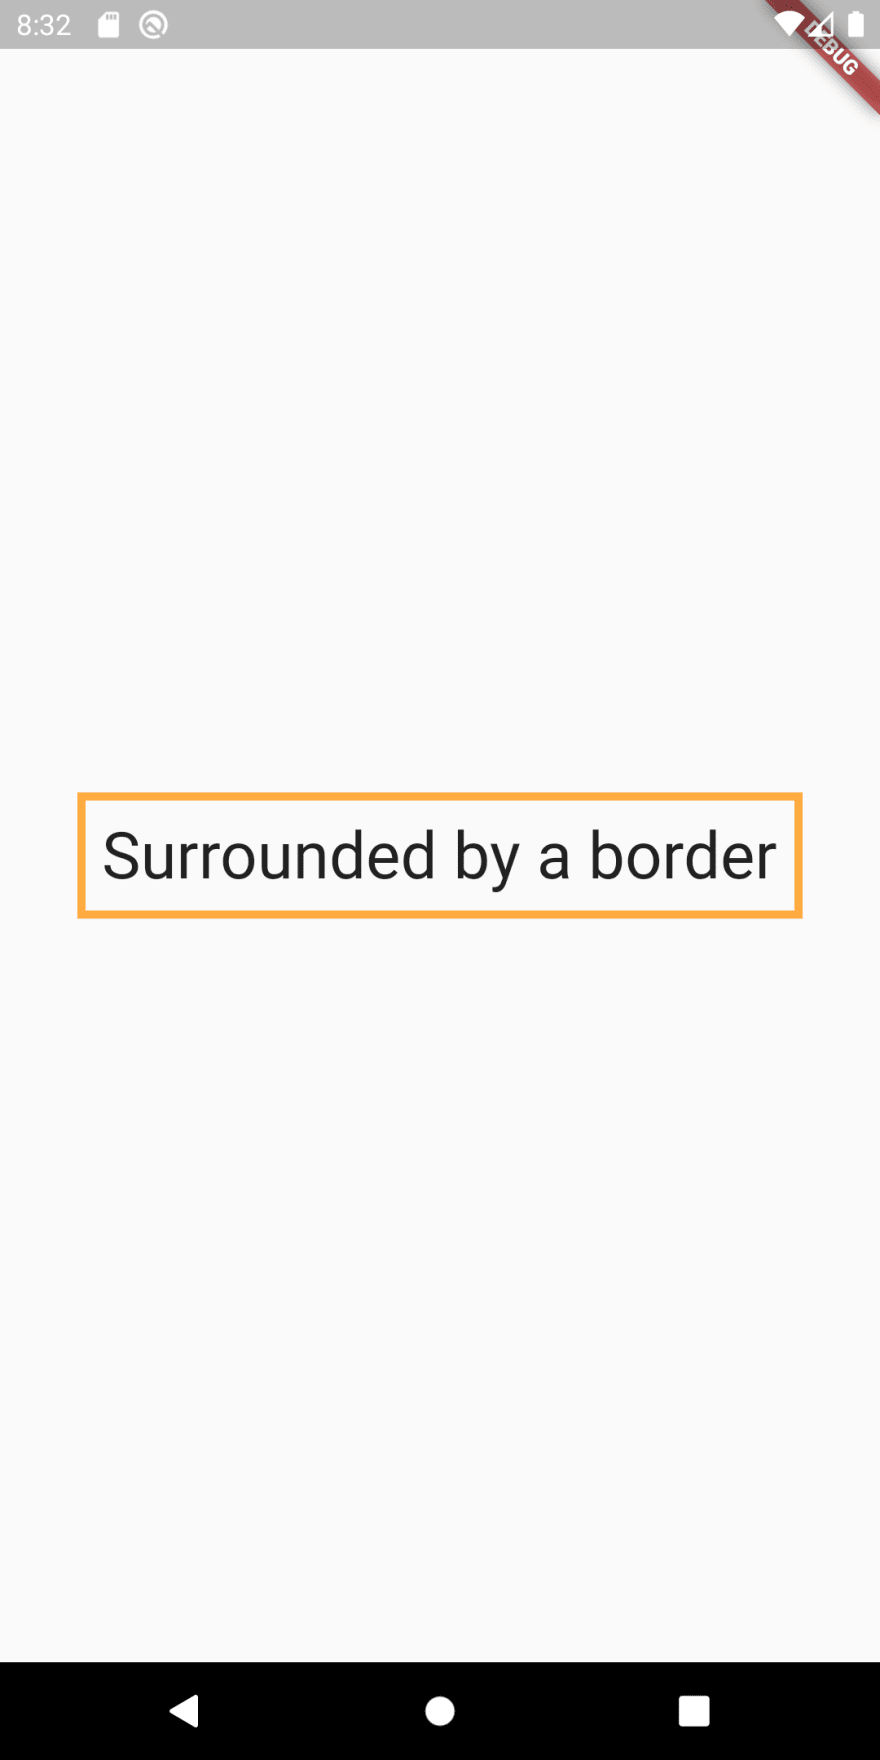 Simple text surrounded by border